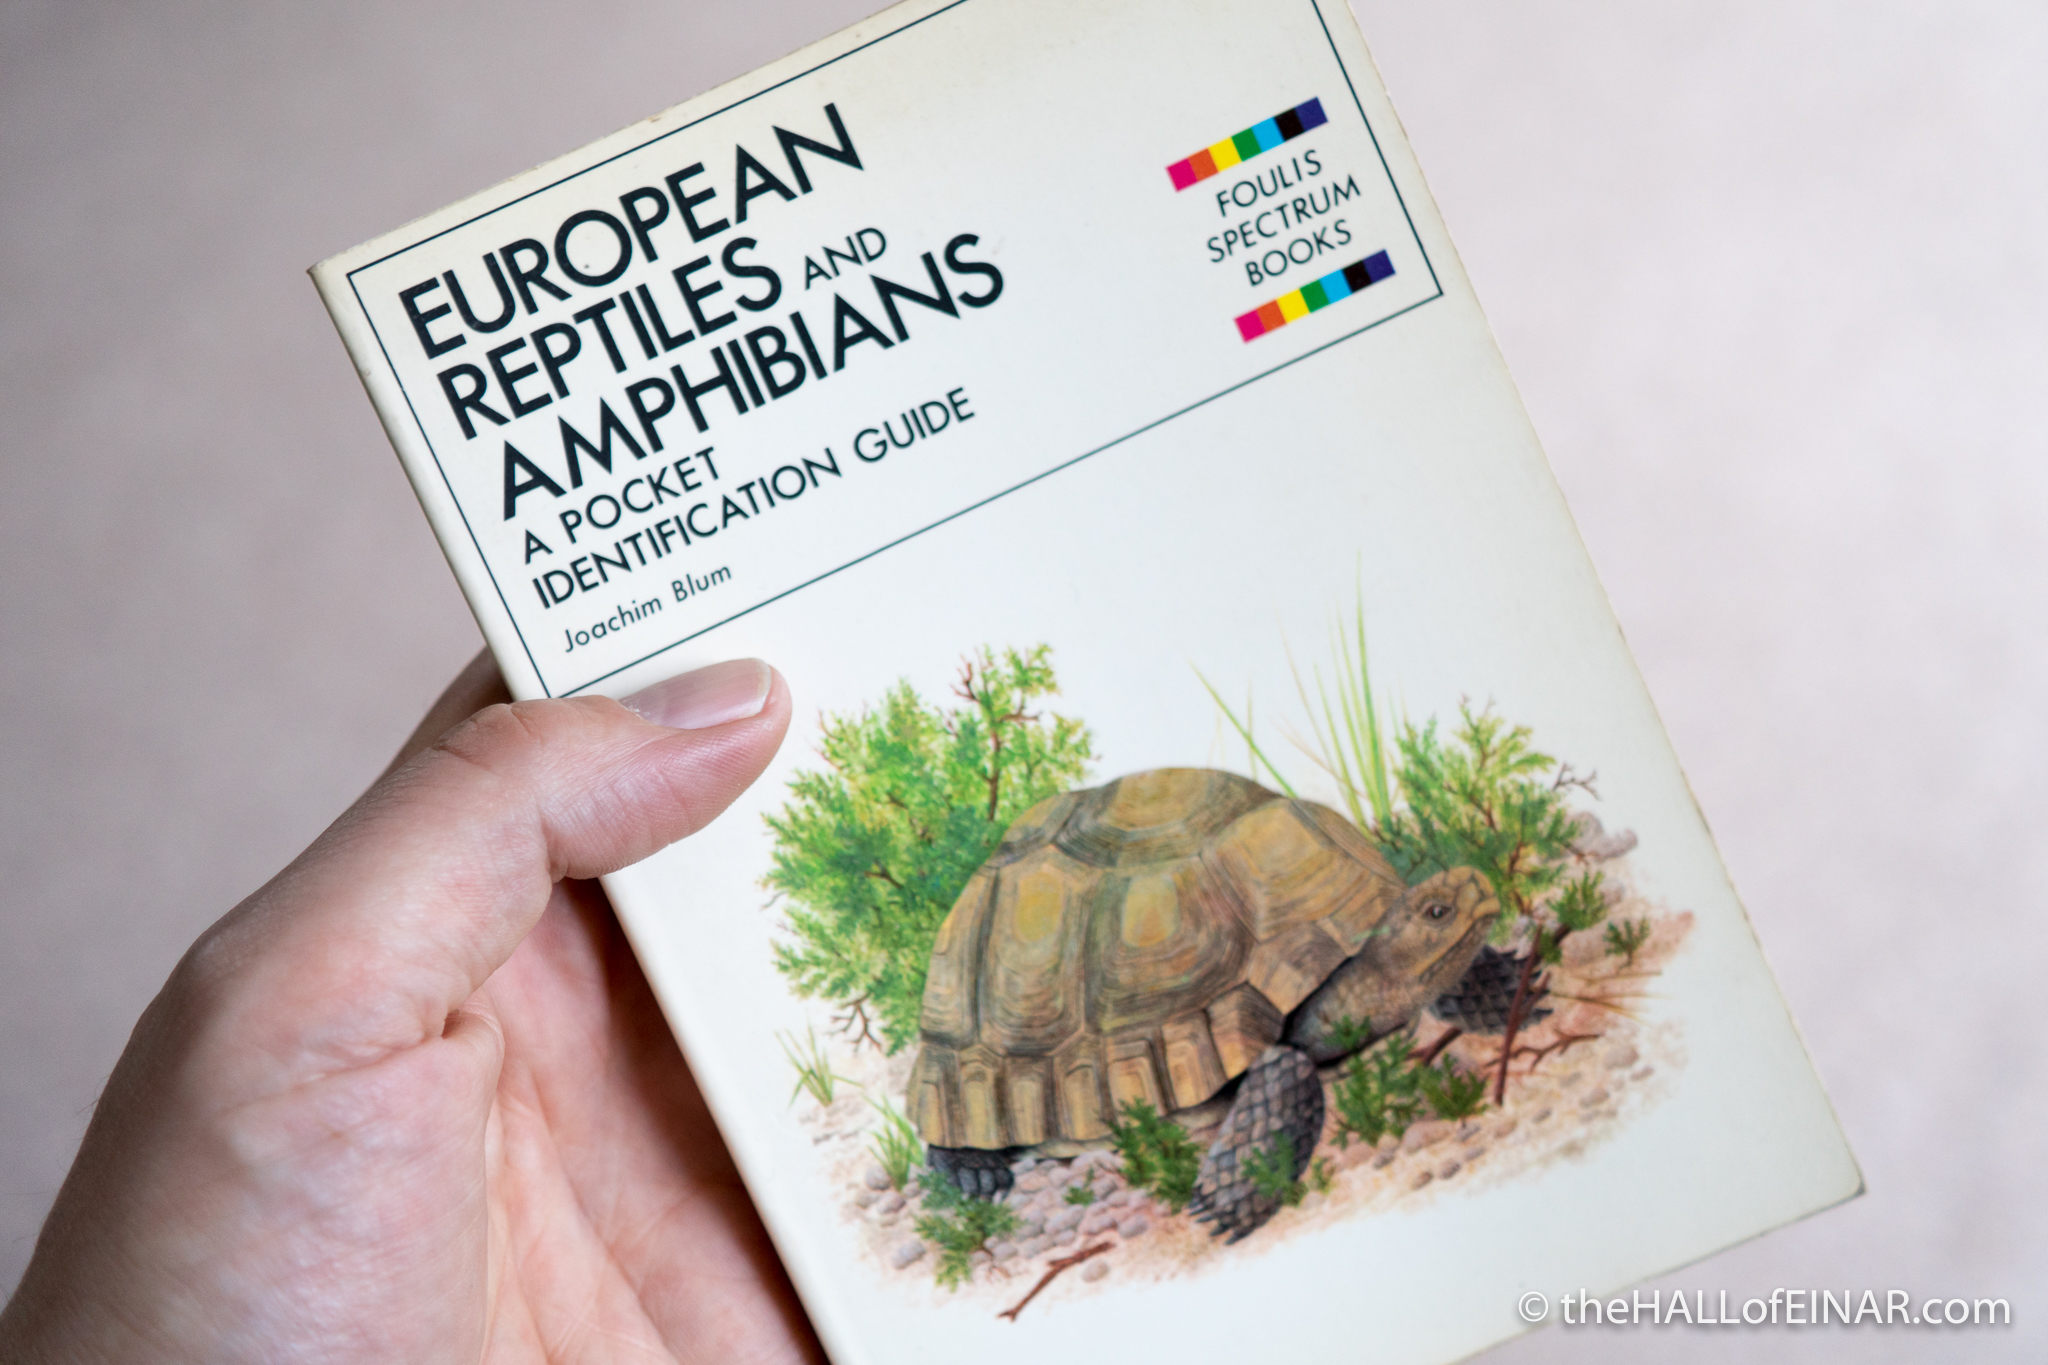 European Reptiles and Amphibians - The Hall of Einar